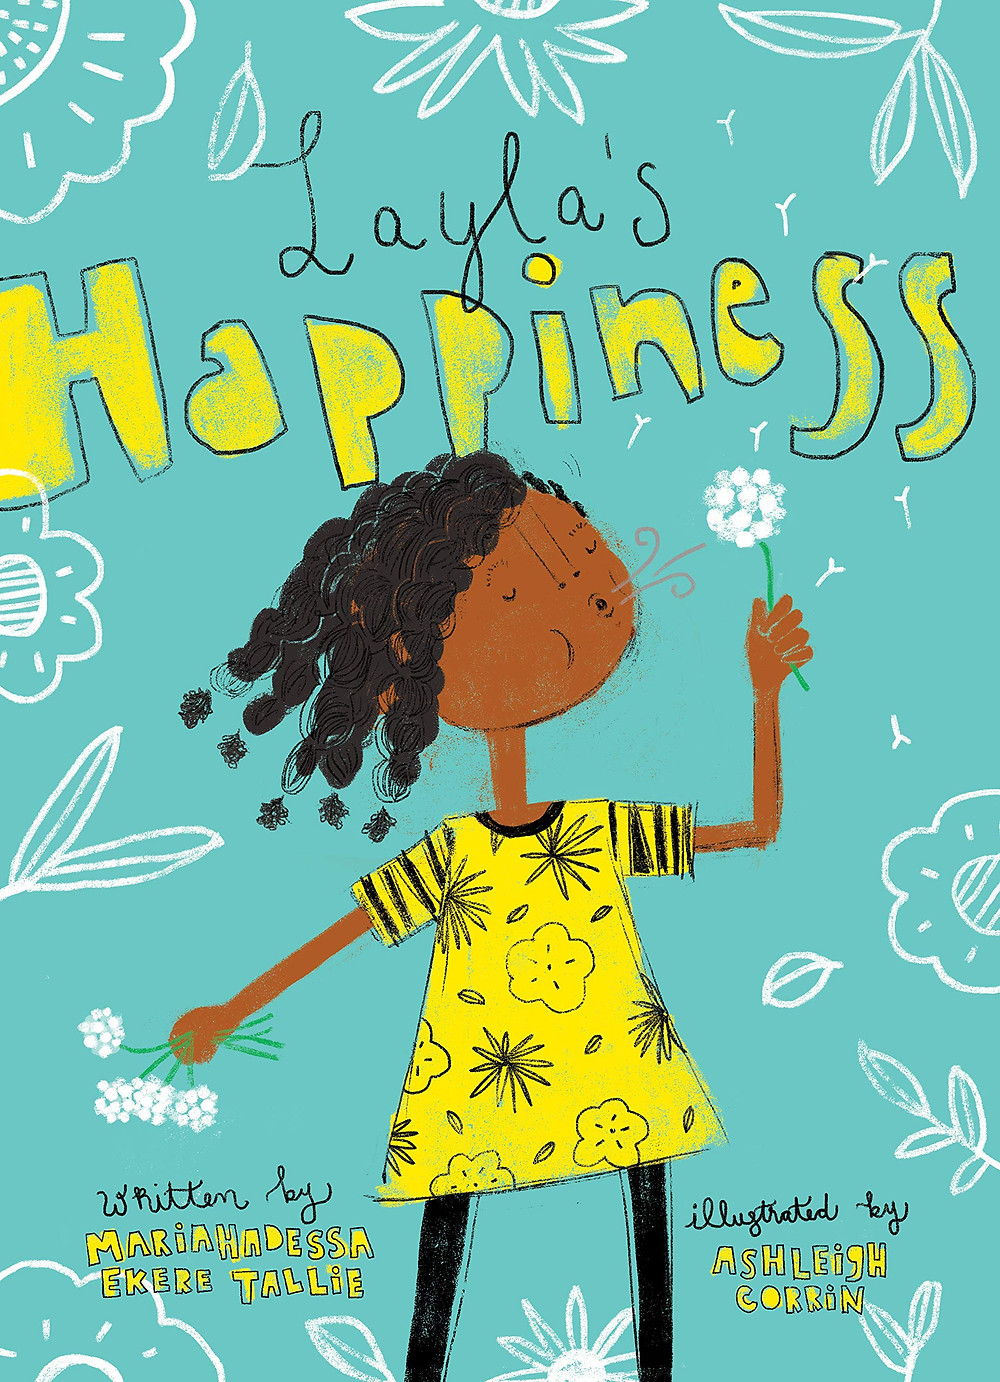 Book cover that is a drawing of a dark complected girl in a yellow dress blowing on a white flower. Background is light blue with Layla's Happiness written across the top in black and yellow.